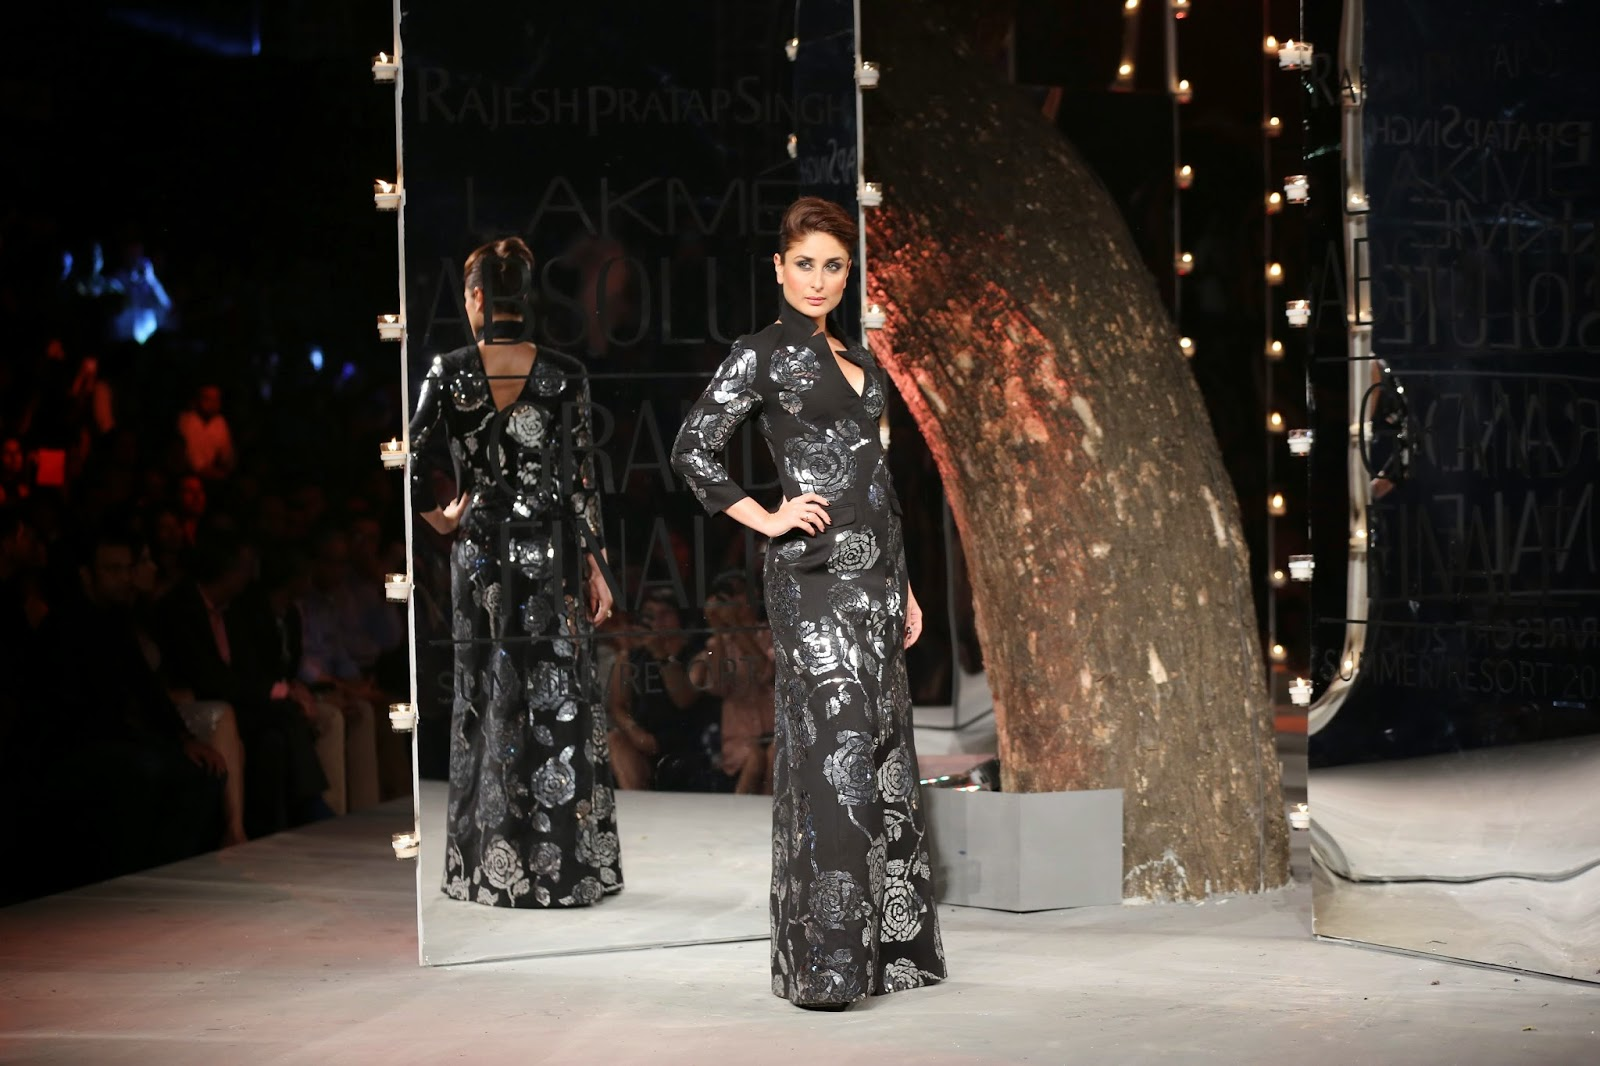 The finale was a burst of fireworks around the ramp as Kareena Kapoor Khan, the brand ambassador of Lakme glided in a fabulous long sleeved V-neck, low back glittering black gown.